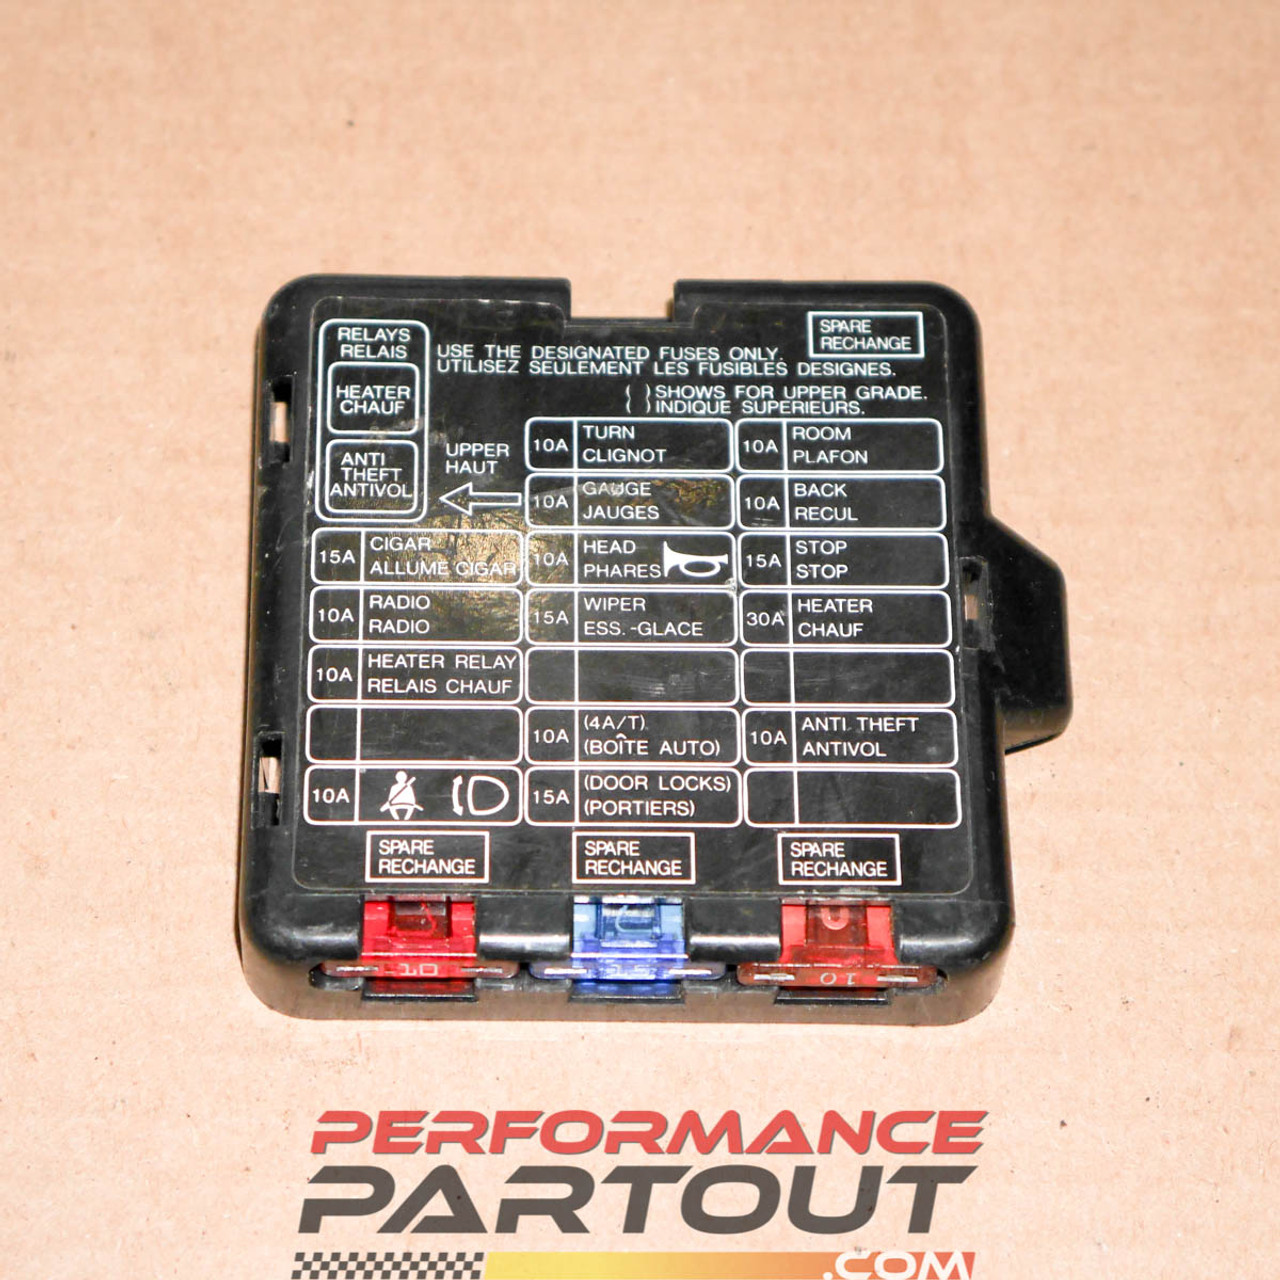 This Is A Fuse Box Cover From 90 - Wiring Diagram Article Xj Fuse Box Location on